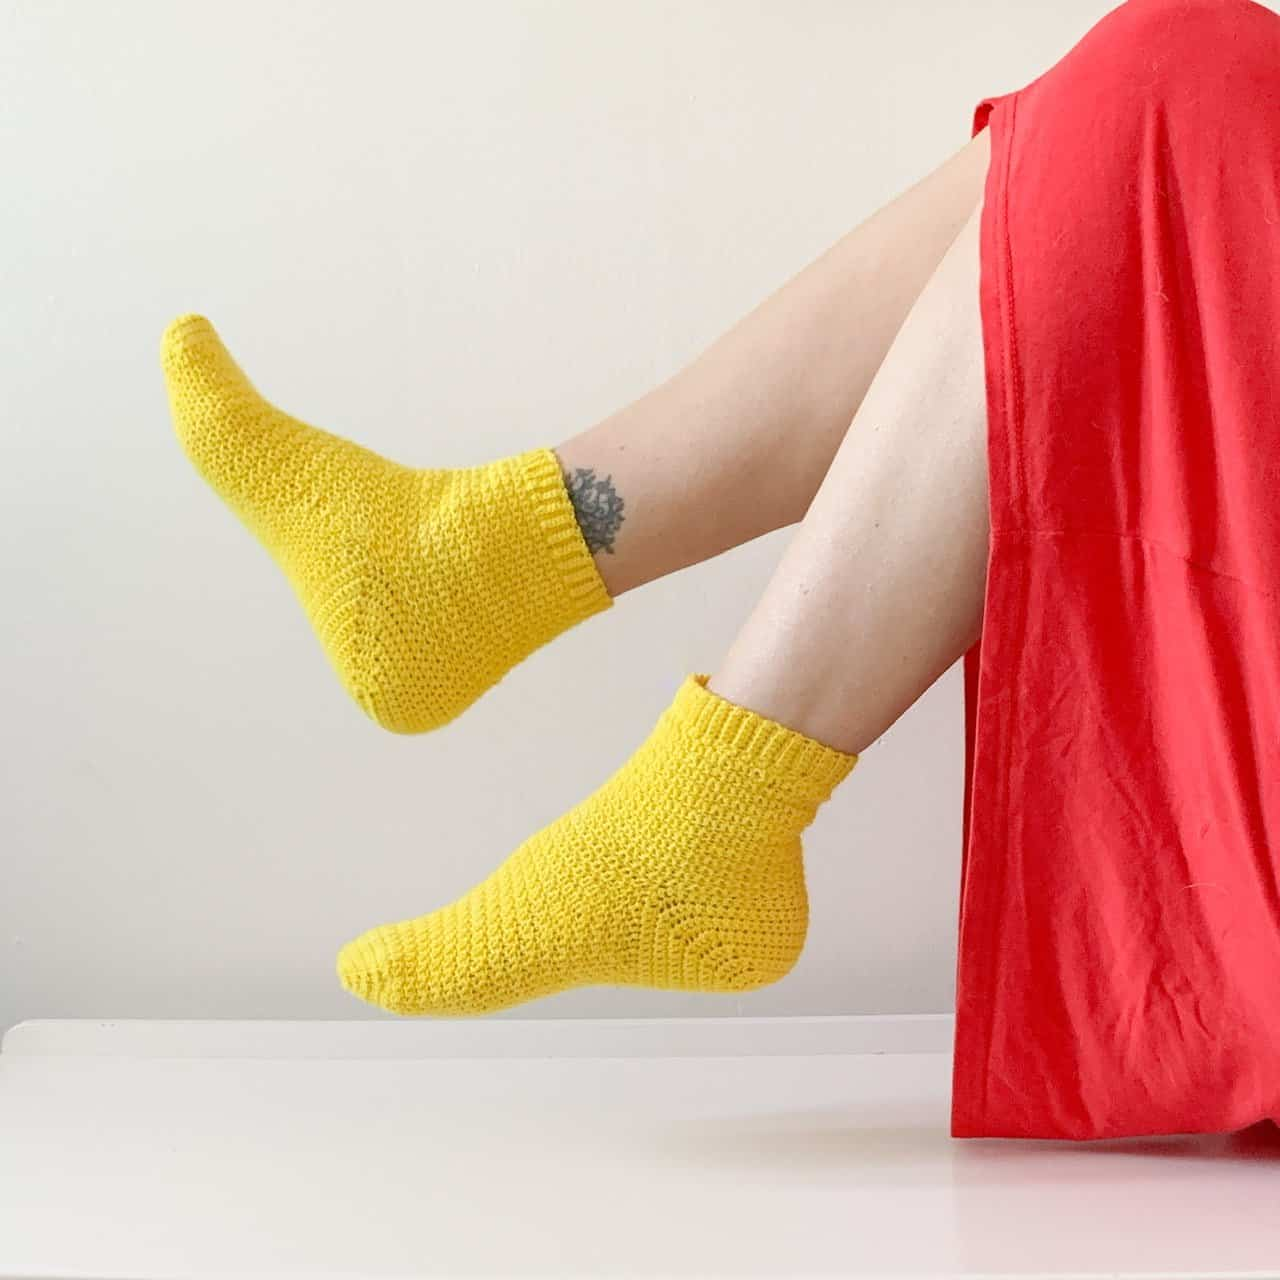 The view of the lower half of a woman in a red dress wearing yellow crochet socks kicking her feet up